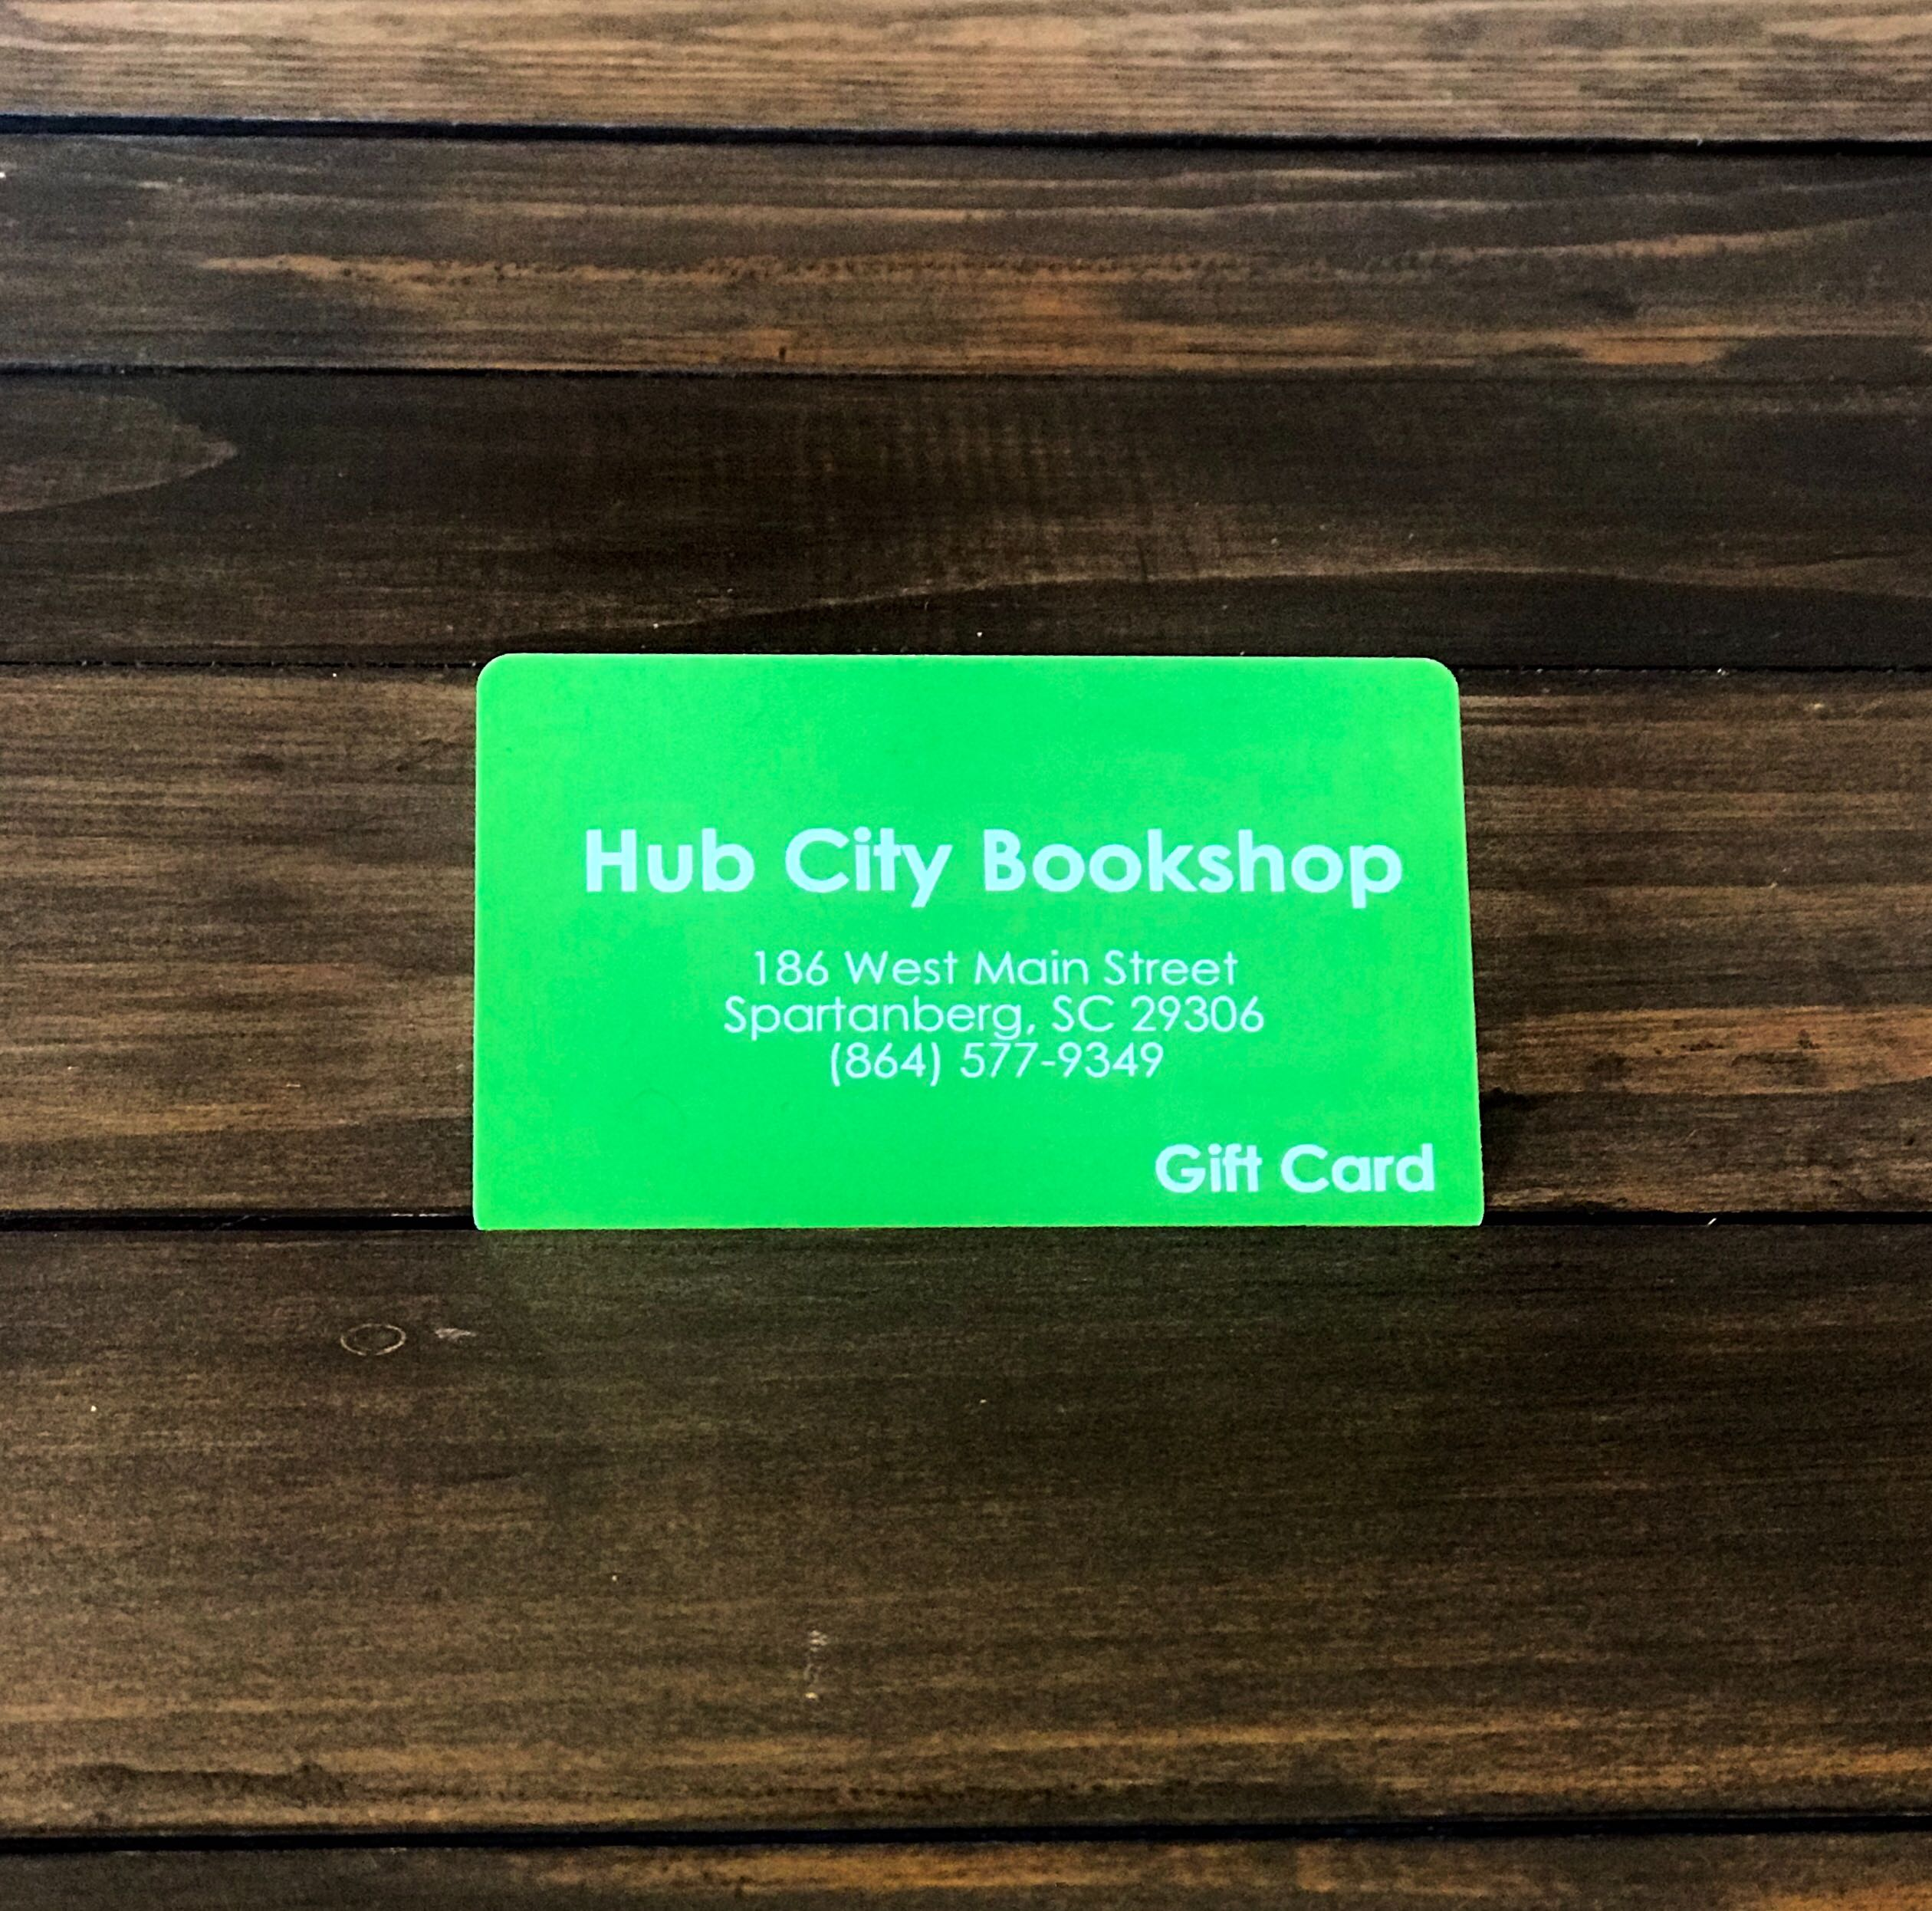 Hub City Bookshop Gift Card - $50